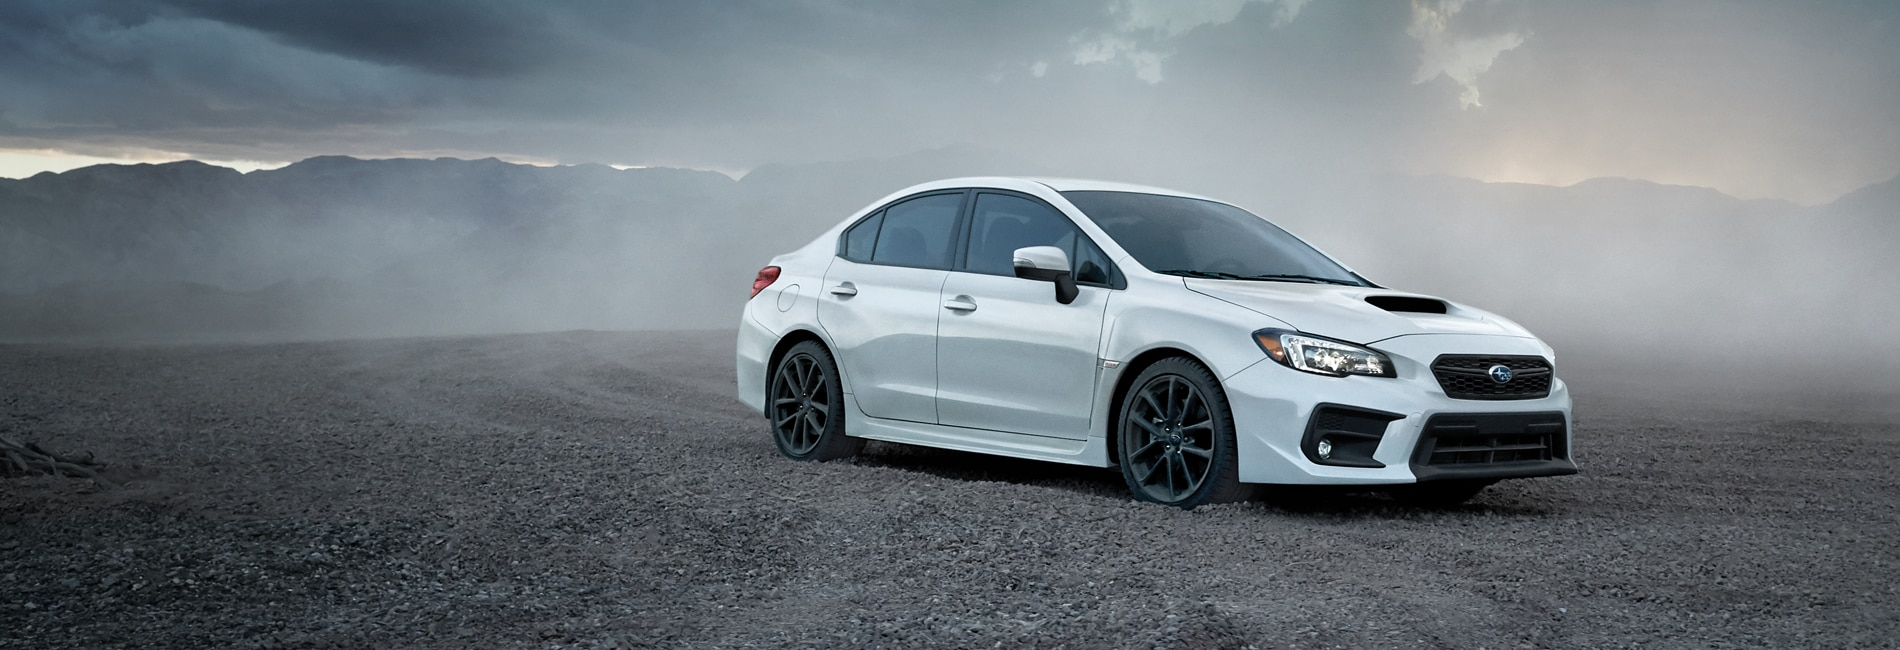 Subaru WRX Exterior Vehicle Features